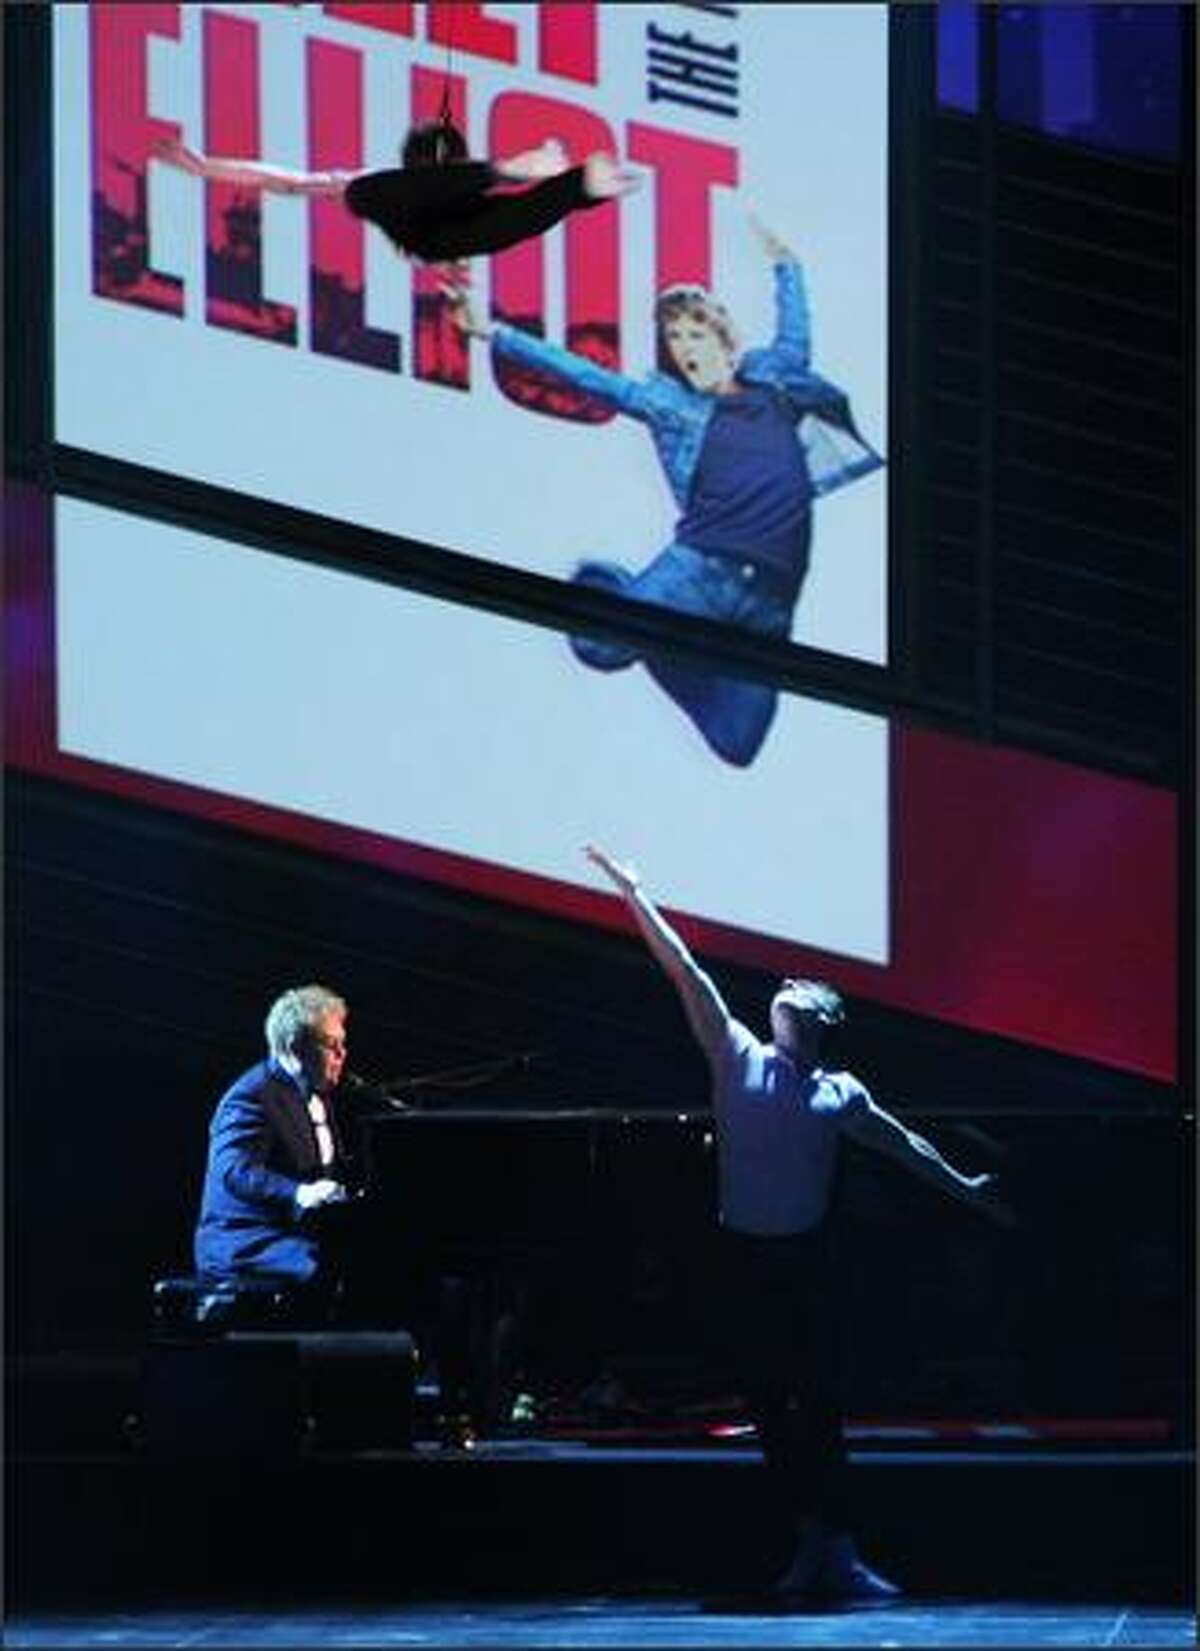 Musician Elton John performs a song from